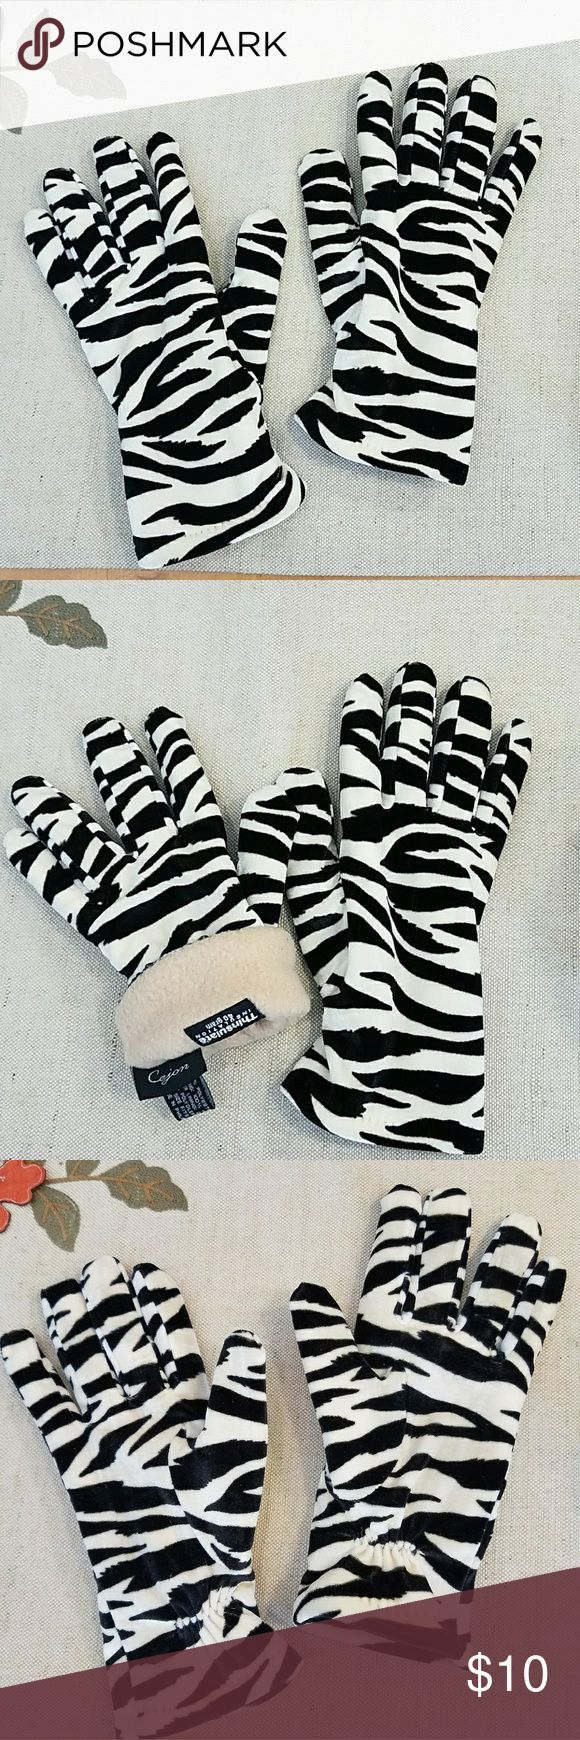 Zebra Print Thinsulate Gloves Velour zebra-print gloves with Thinsulate insulated lining. Gathered at wrists. Tag says OSFA but I think these will fit S-M sizes best. Adorable, soft and warm! Cejon Accessories Gloves & Mittens